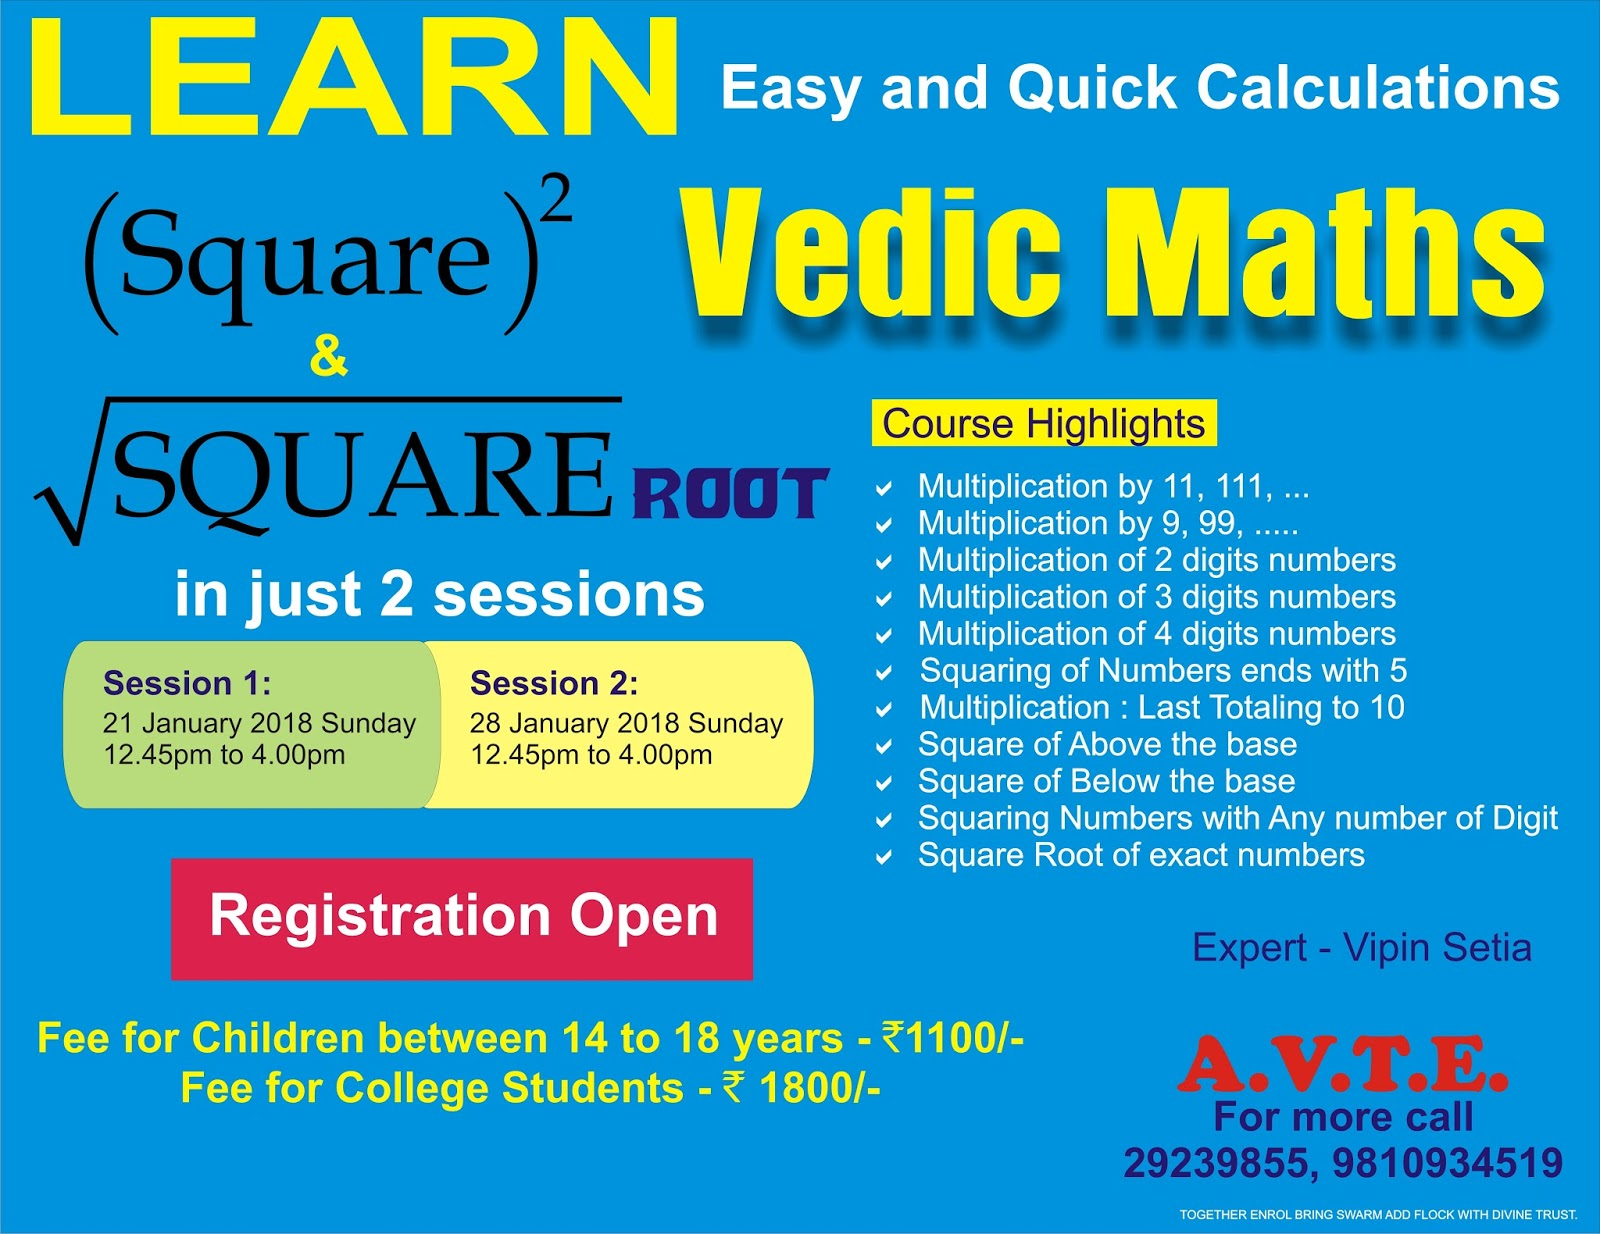 Maths4all: VEDIC MATHS